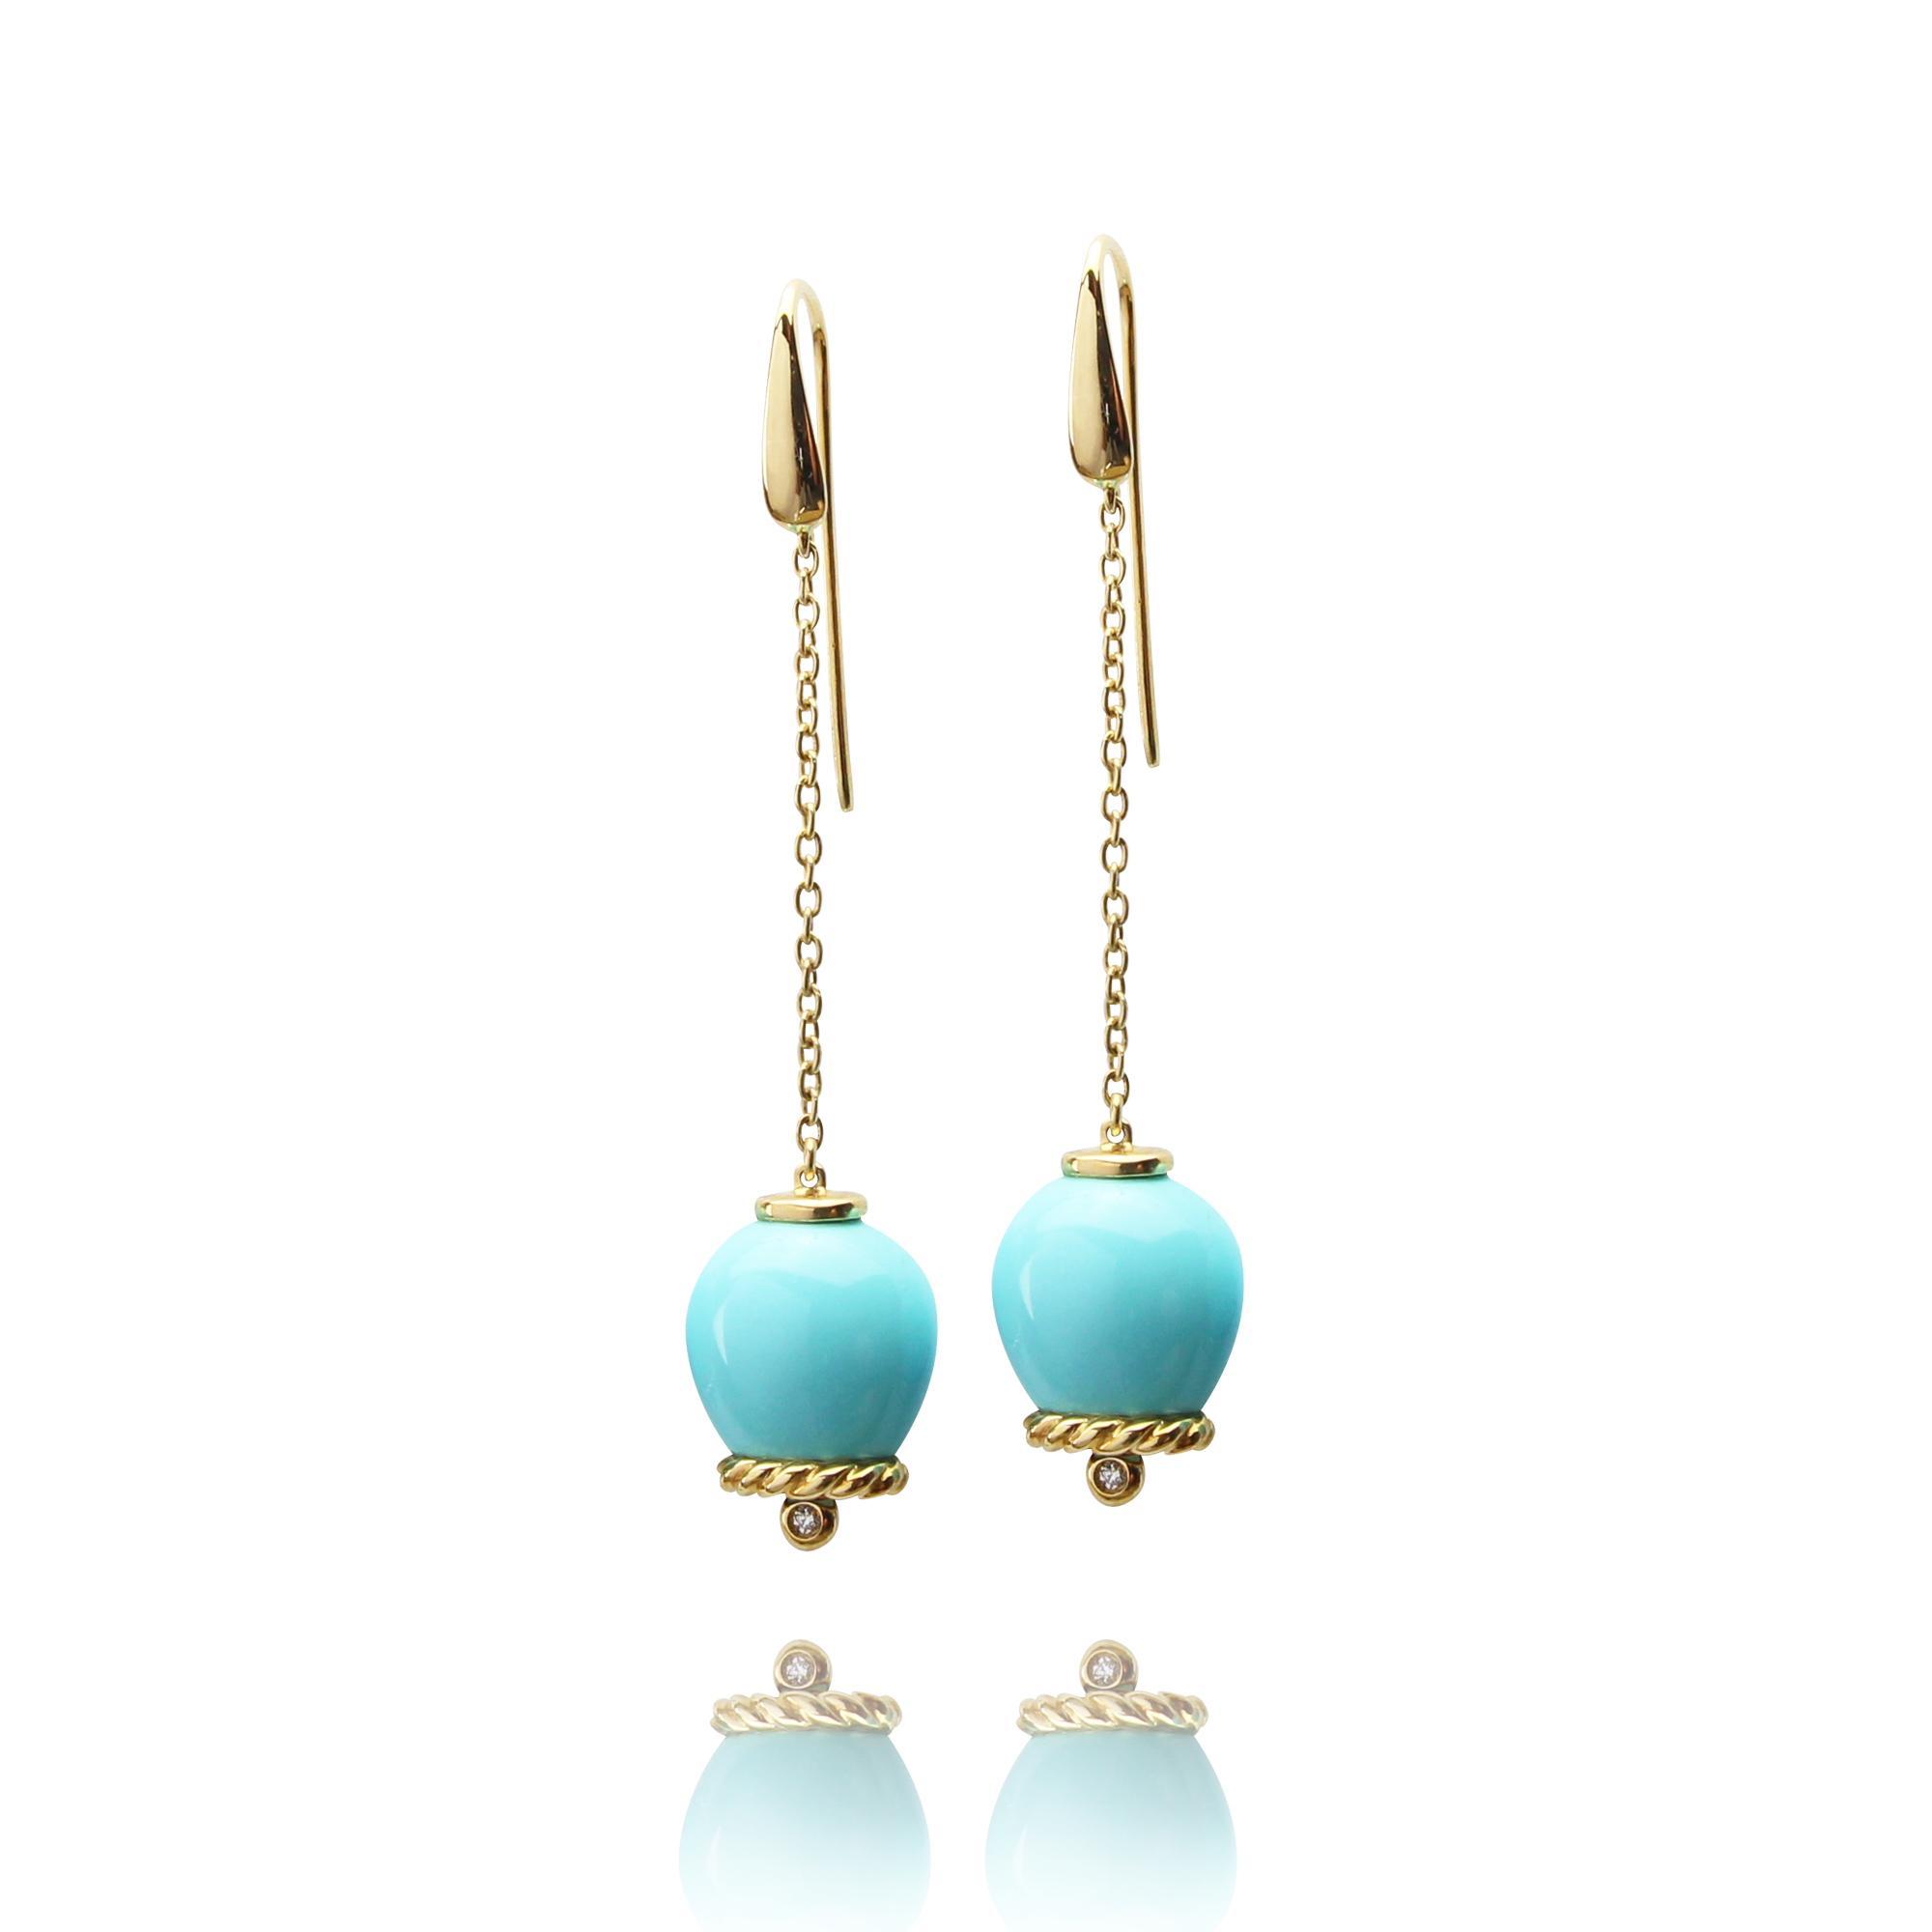 earrings campanelle in yellow gold 18 carat turquoise reconstructed and diamonds